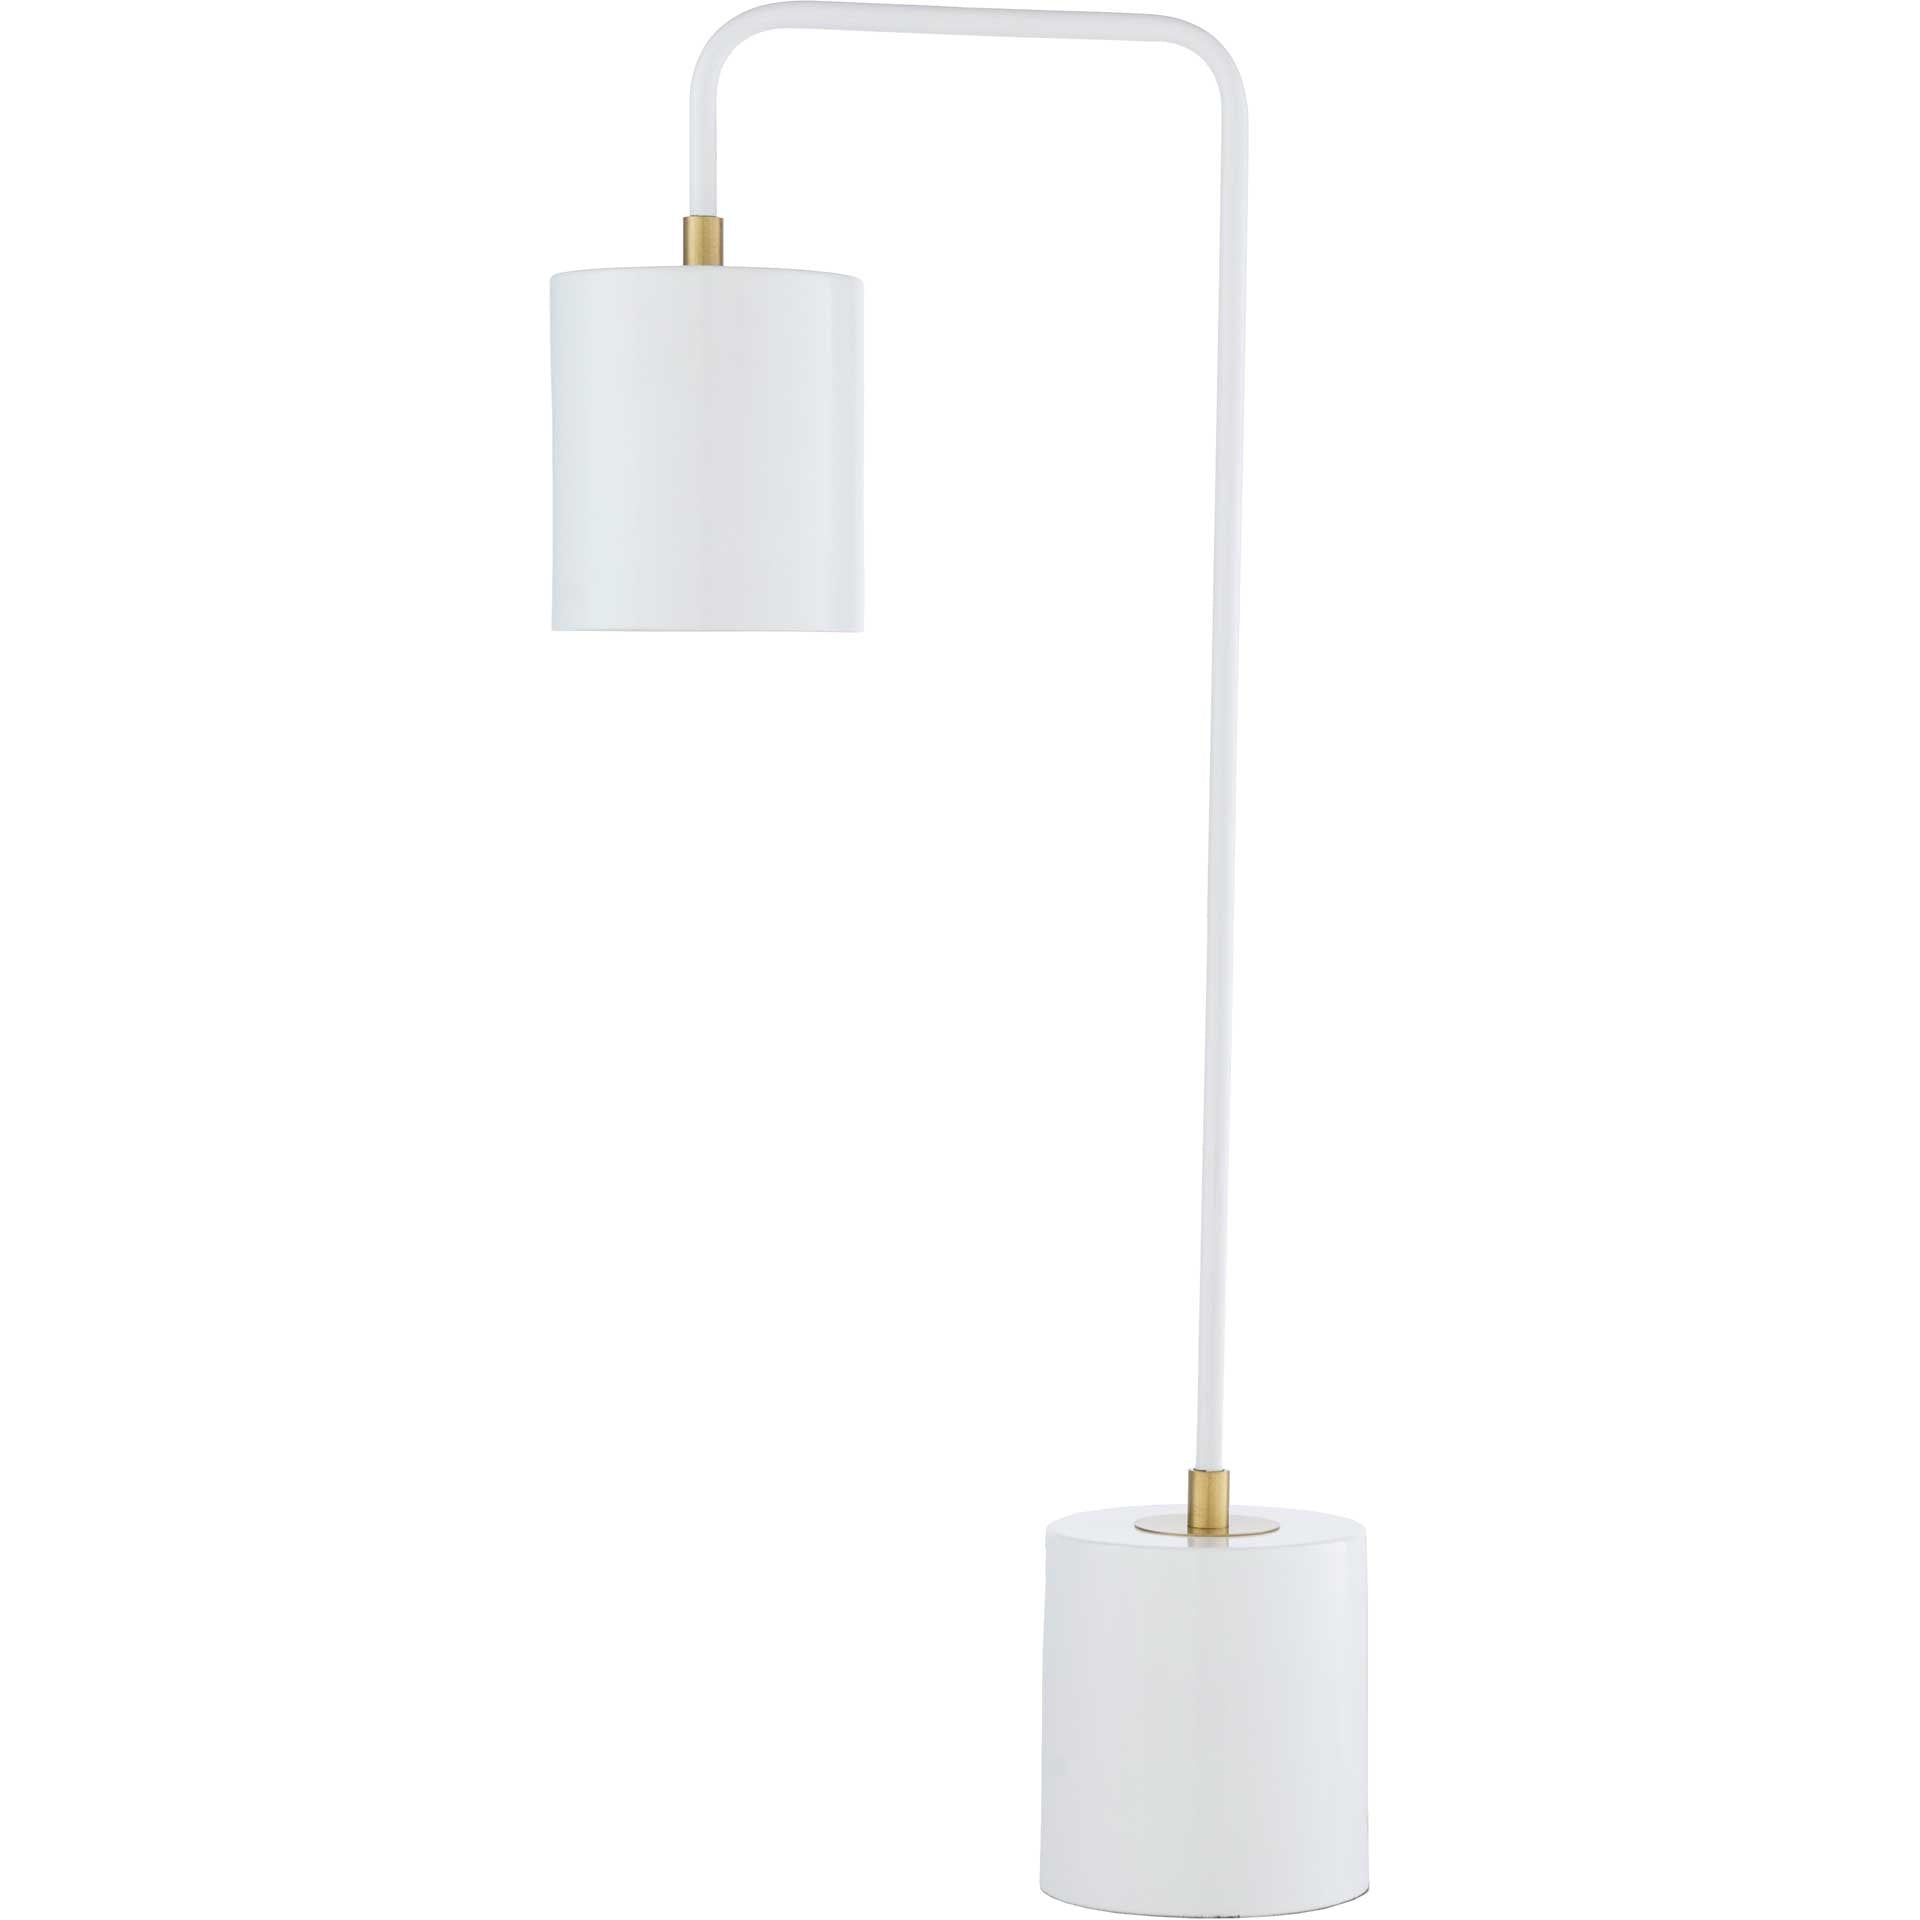 Bobby Table Lamp White/Brass